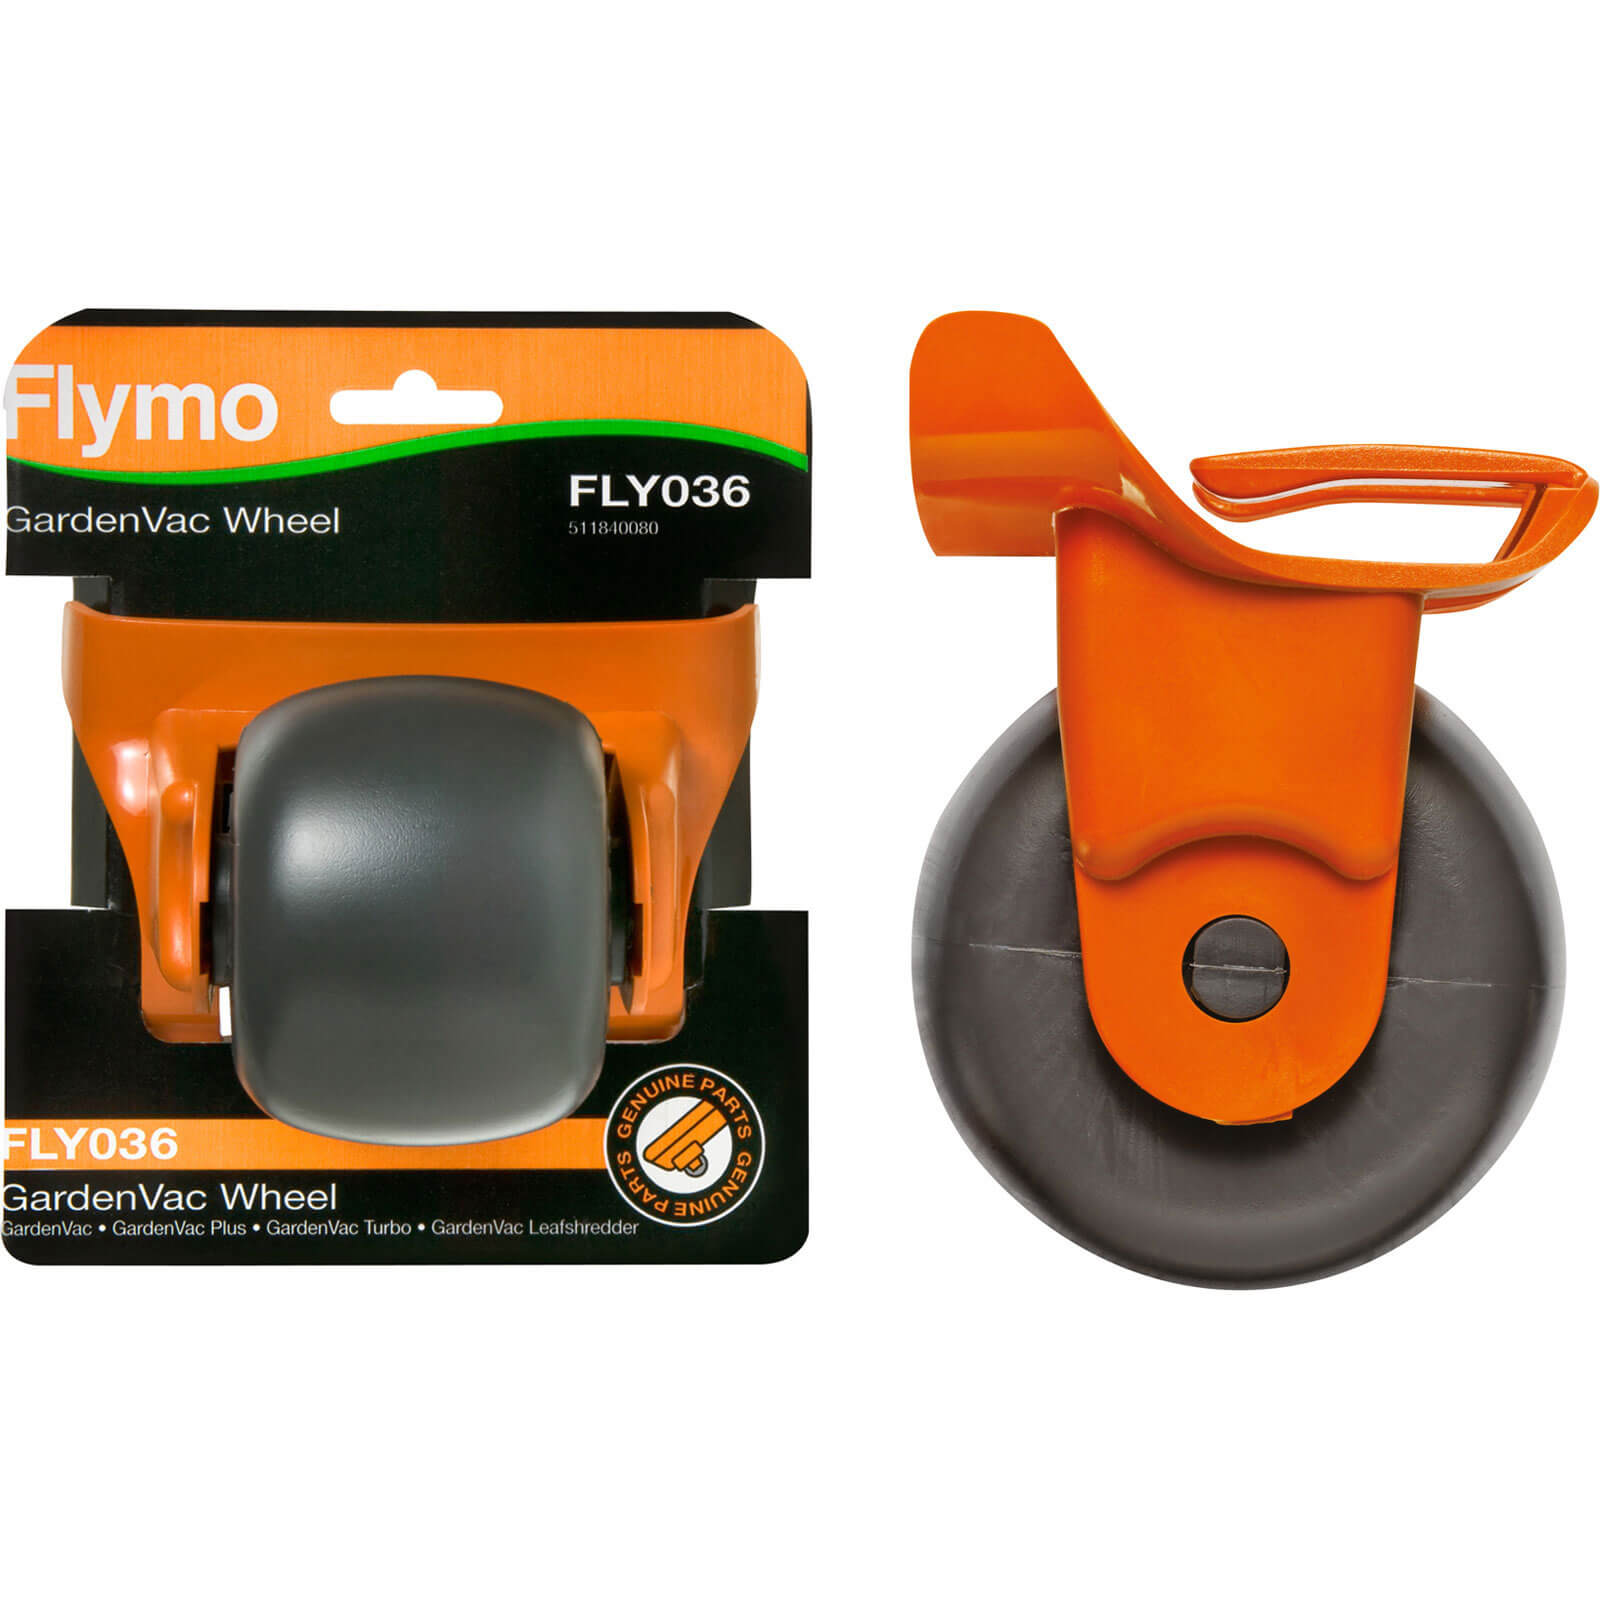 Flymo FLY036 Genuine Wheel for Gardenvac Pack of 1